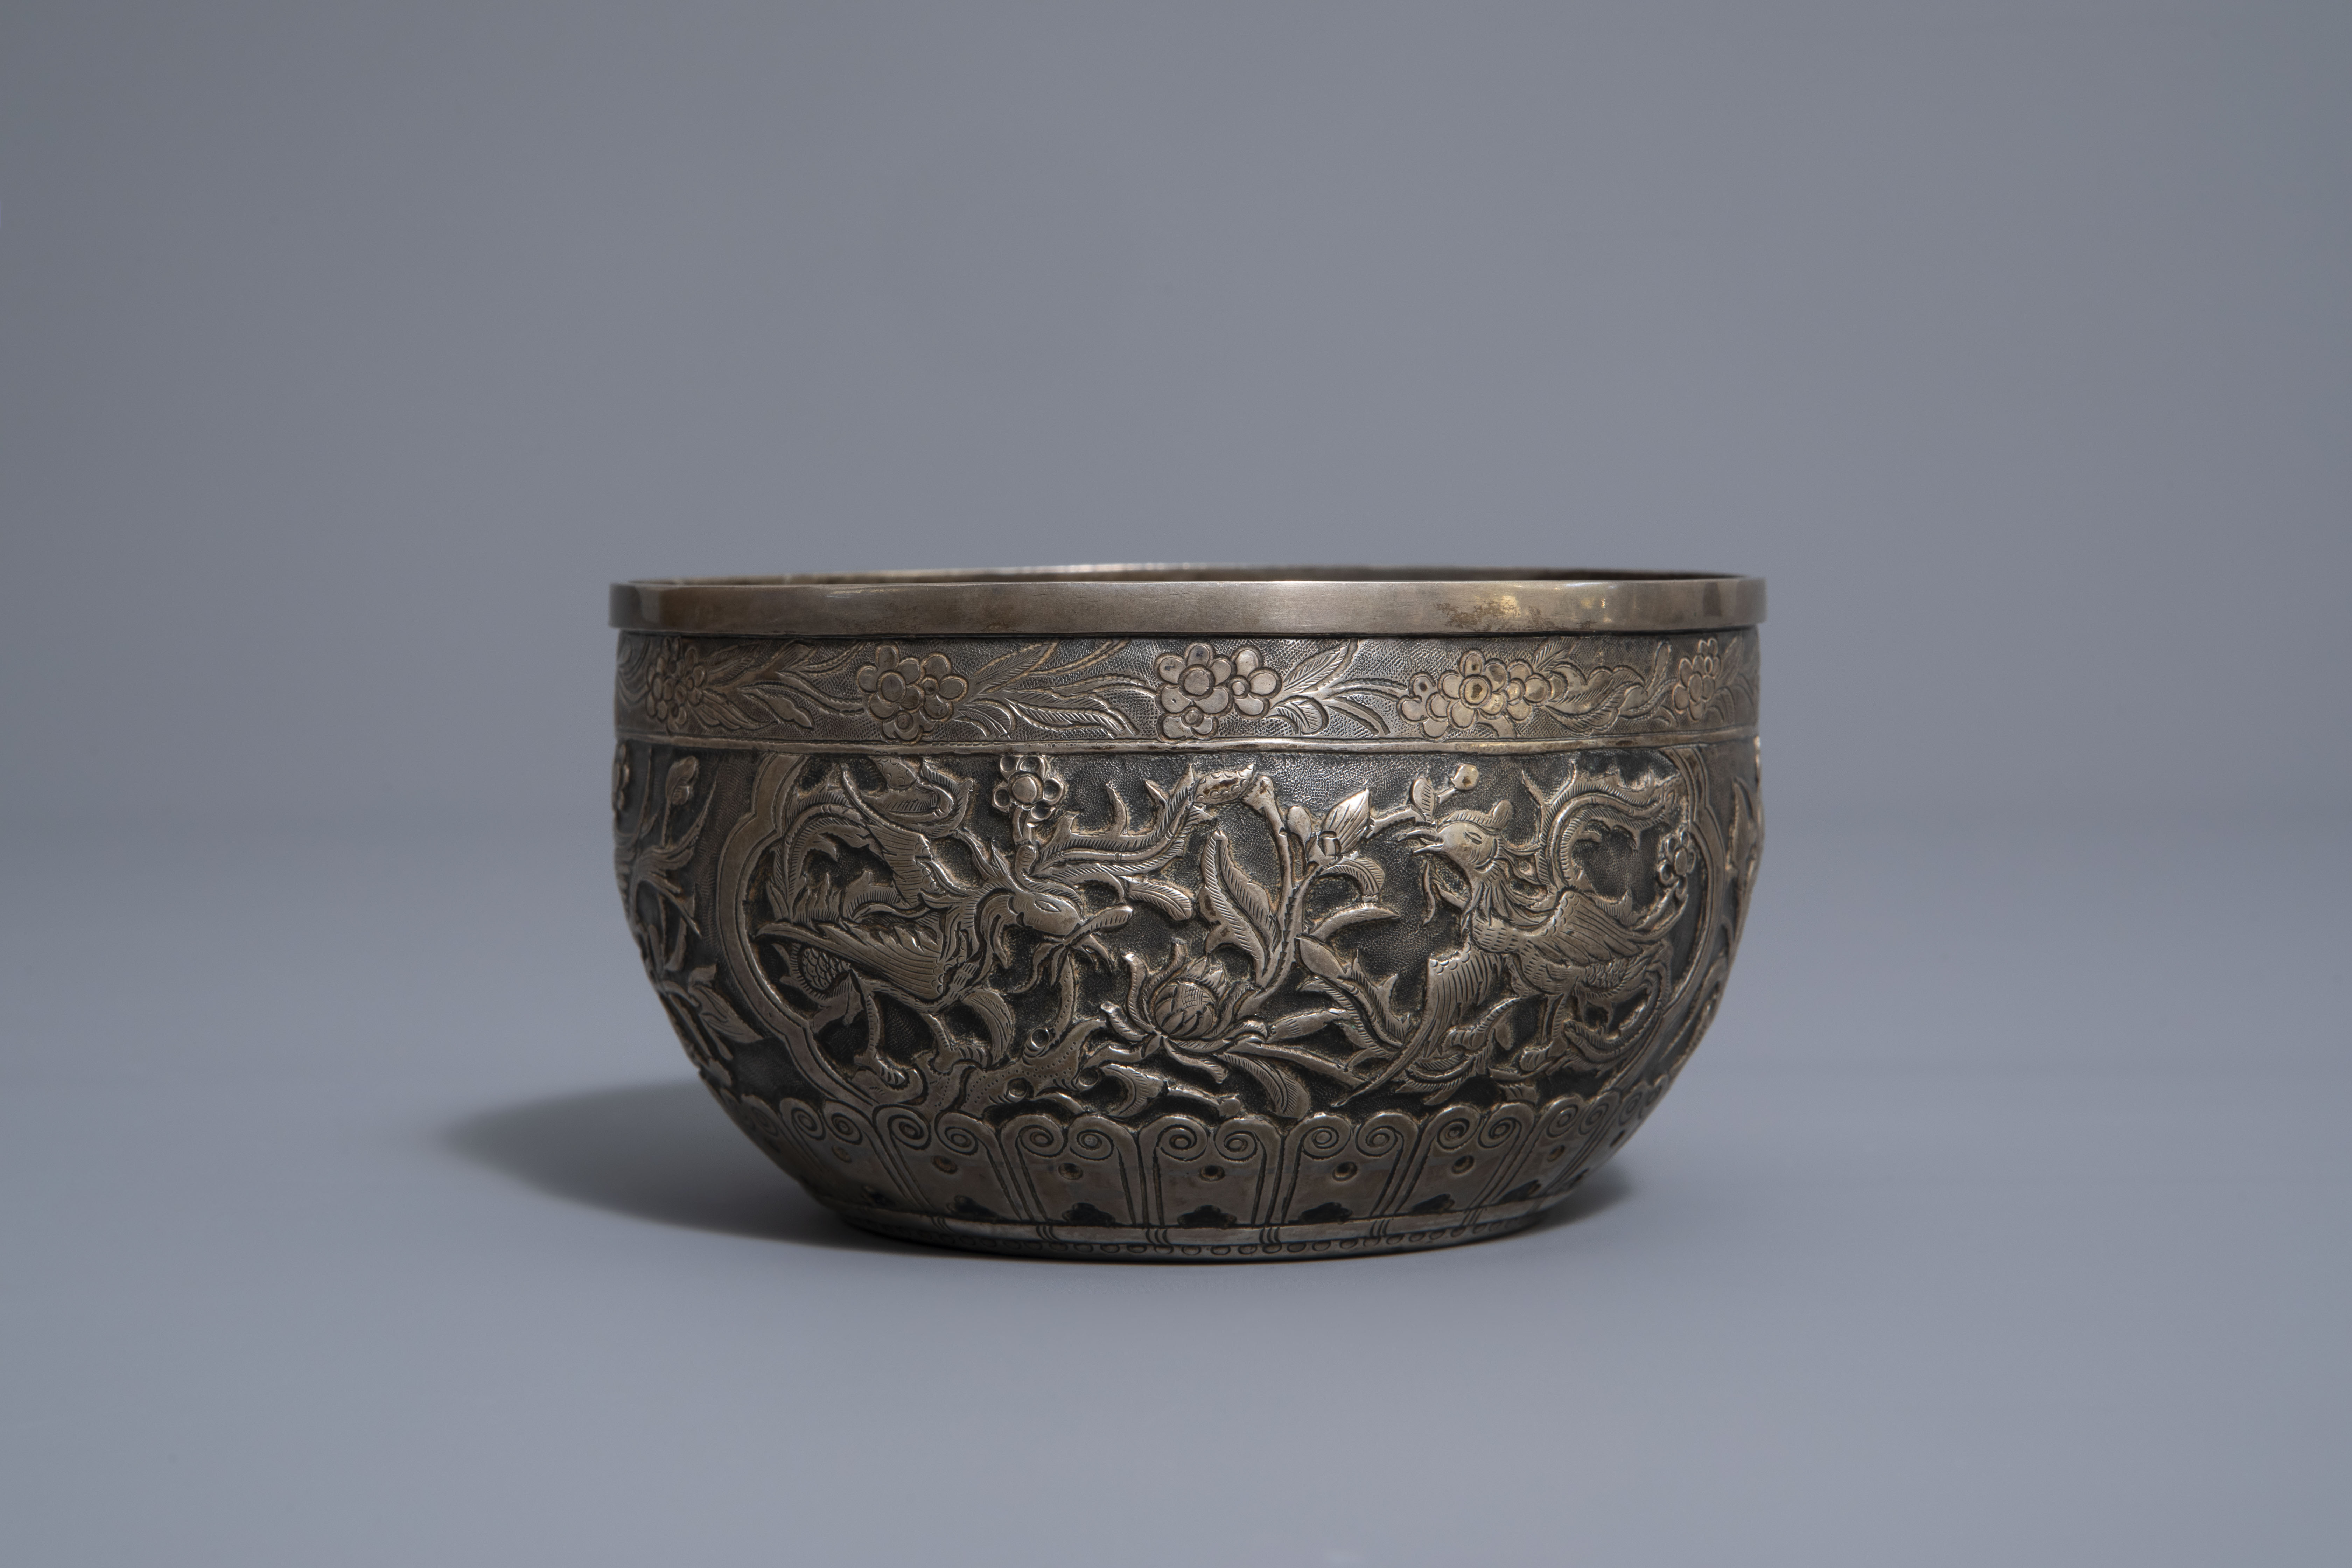 Five Chinese famille rose and silver cups and saucers and a bowl, 19th/20th C. - Image 10 of 17